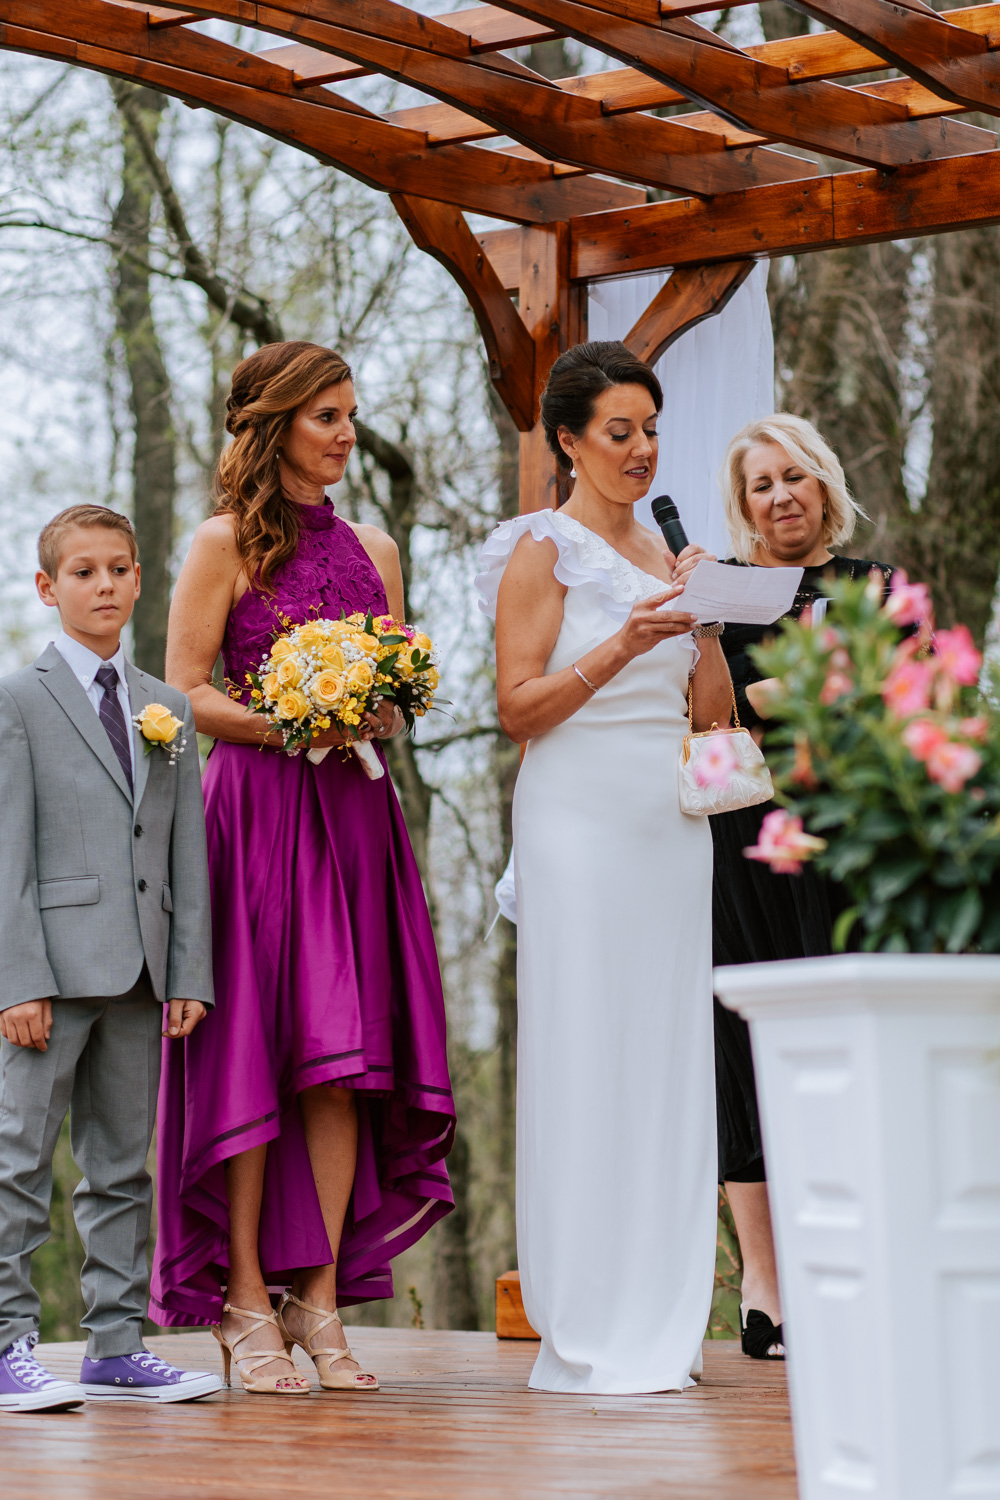 Shutter Up Studios   Wedding photographer in Pittsburgh, Pennsylvania   Outdoor elegant ceremony with bride reading vows